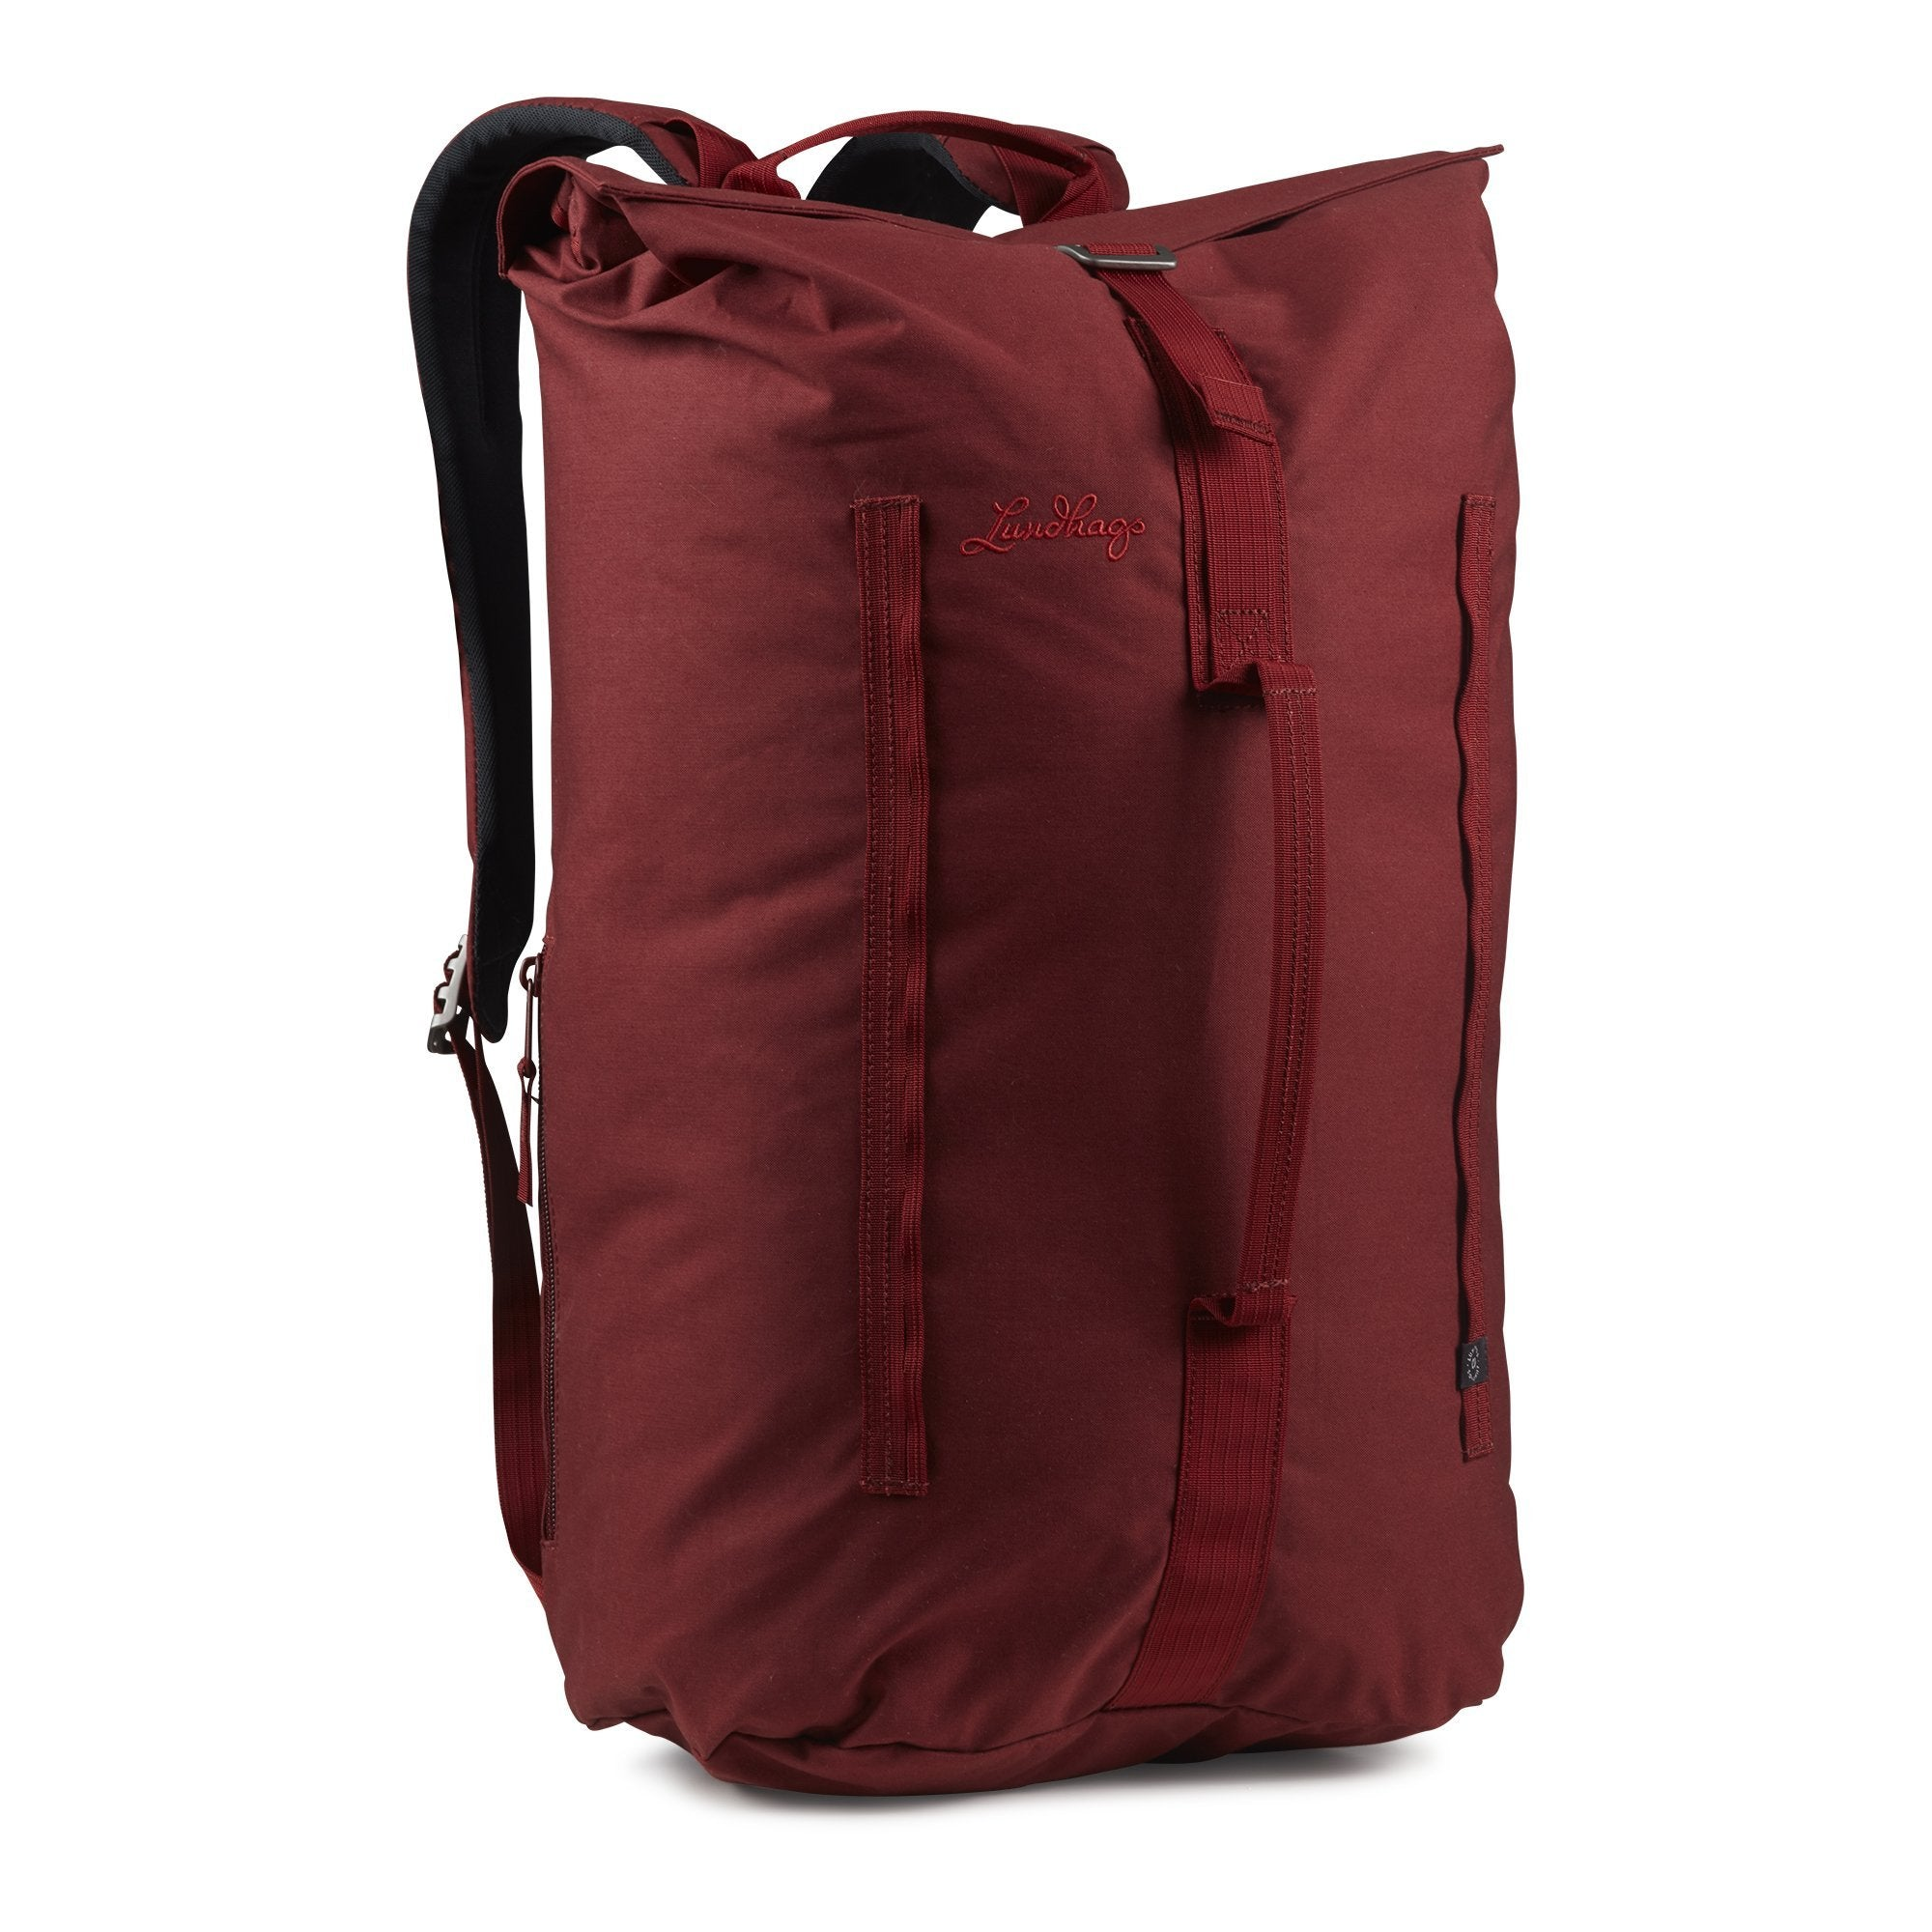 Knarven 25 - Dark Red - Unisex - Vindpinad